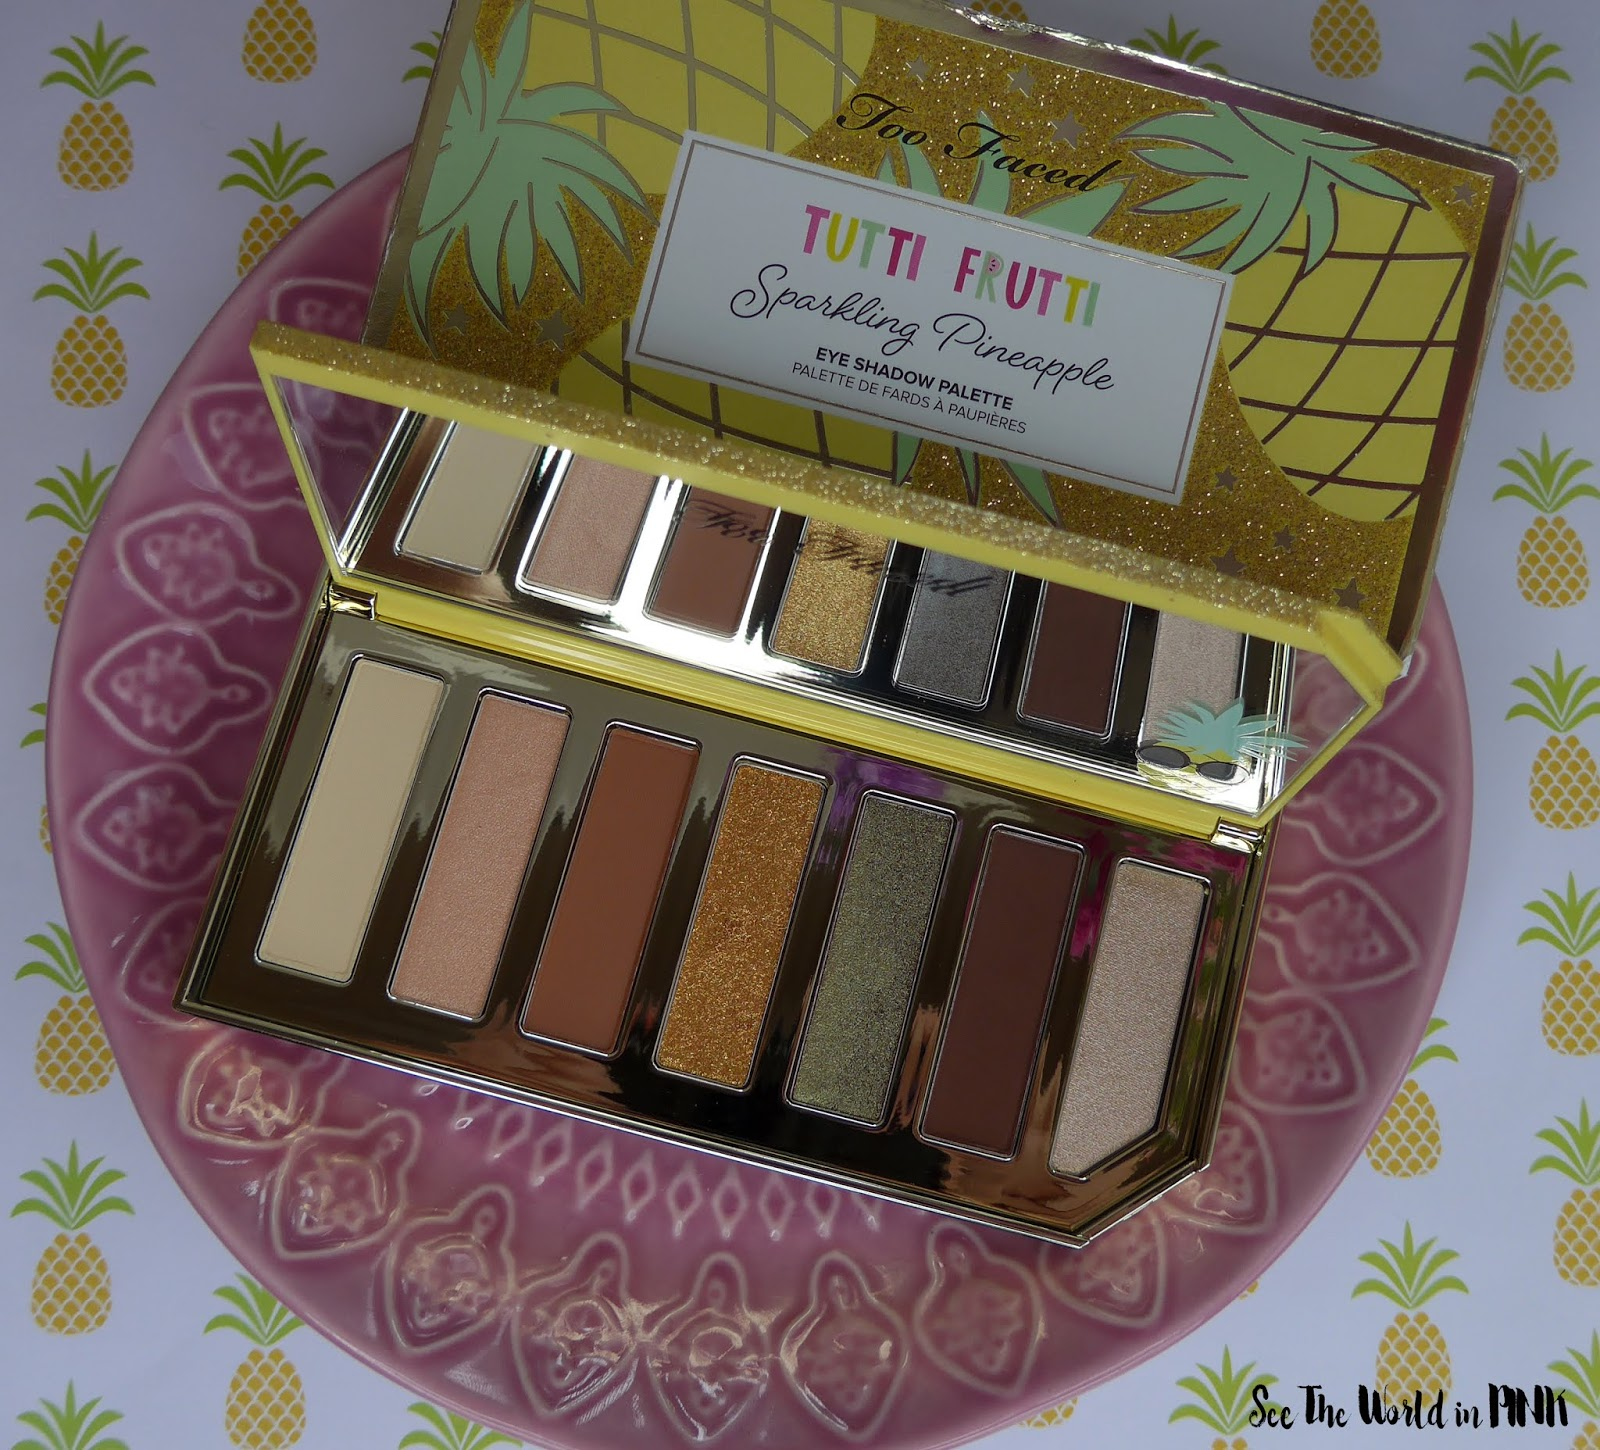 Too Faced Tutti Frutti Collection - Sparkling Pineapple Eyeshadow Palette